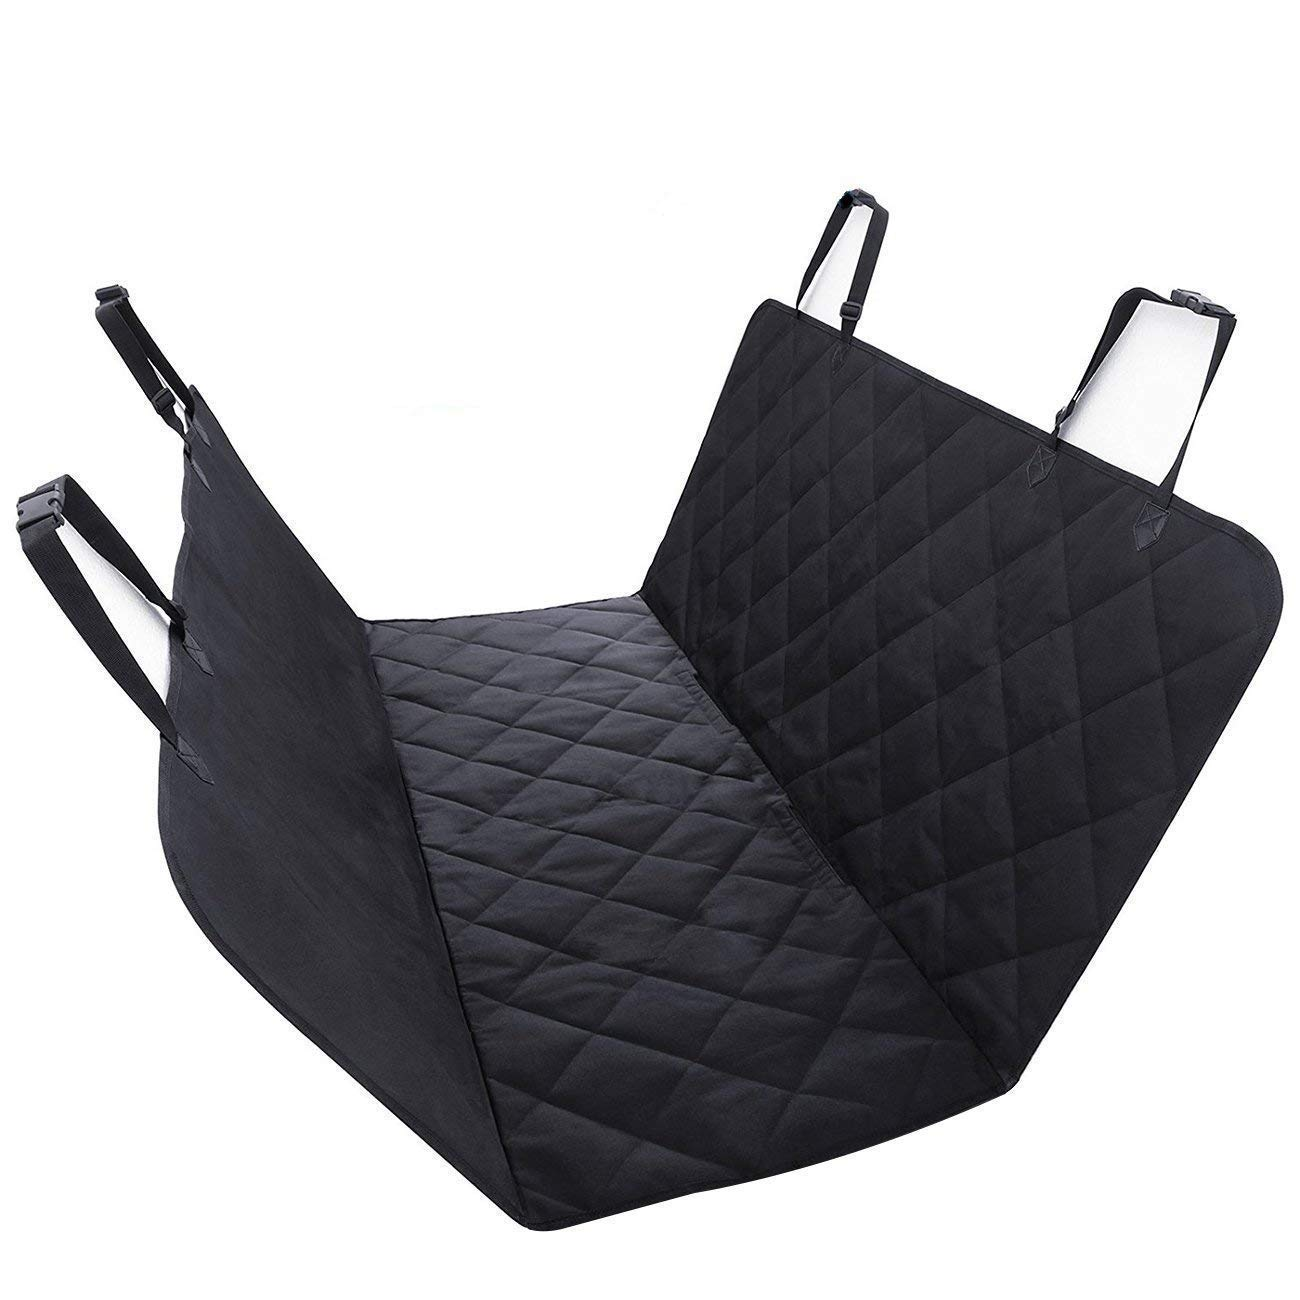 GDZ Dog Seat Cover for Cars Waterproof Nonslip Pad With Seat Anchors, Hammock Style, Pet Car Seat Predector  Universal Fit, Black